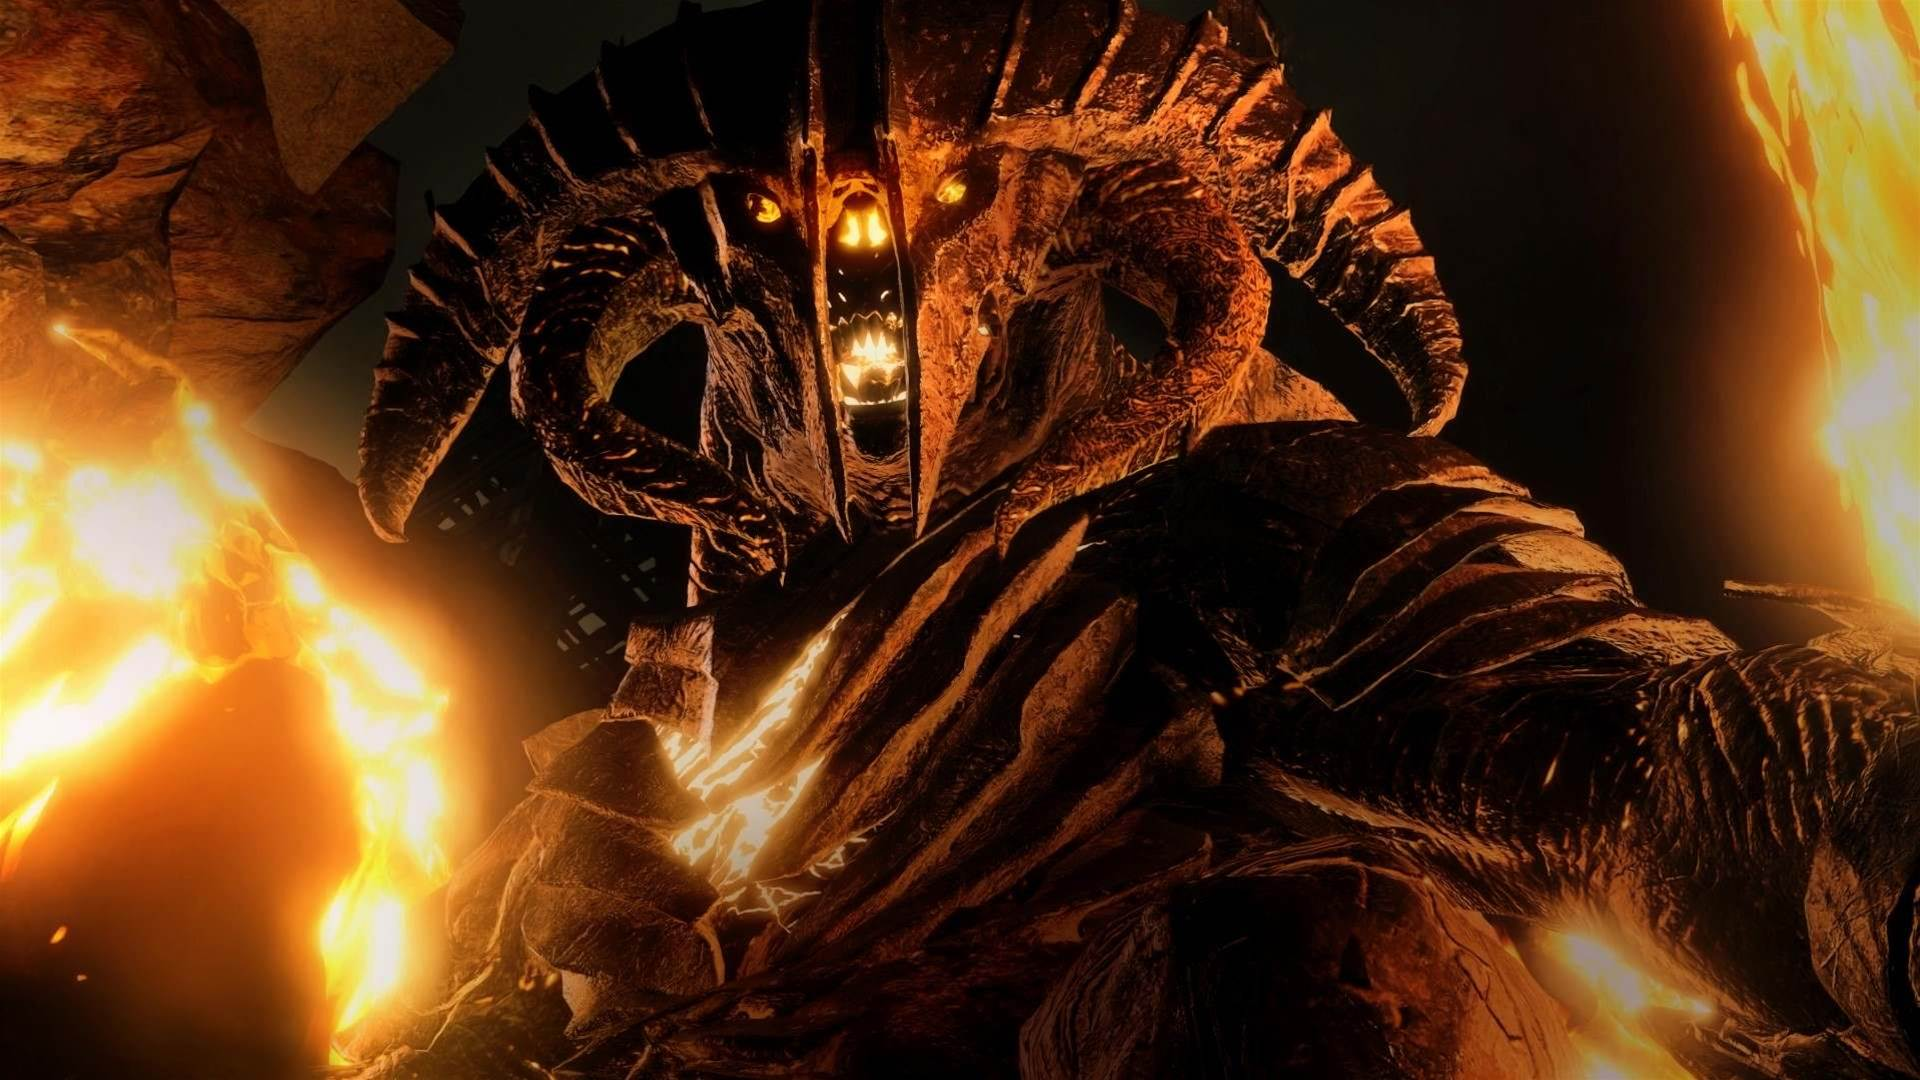 A contingent of Middle-earth: Shadow of War screens